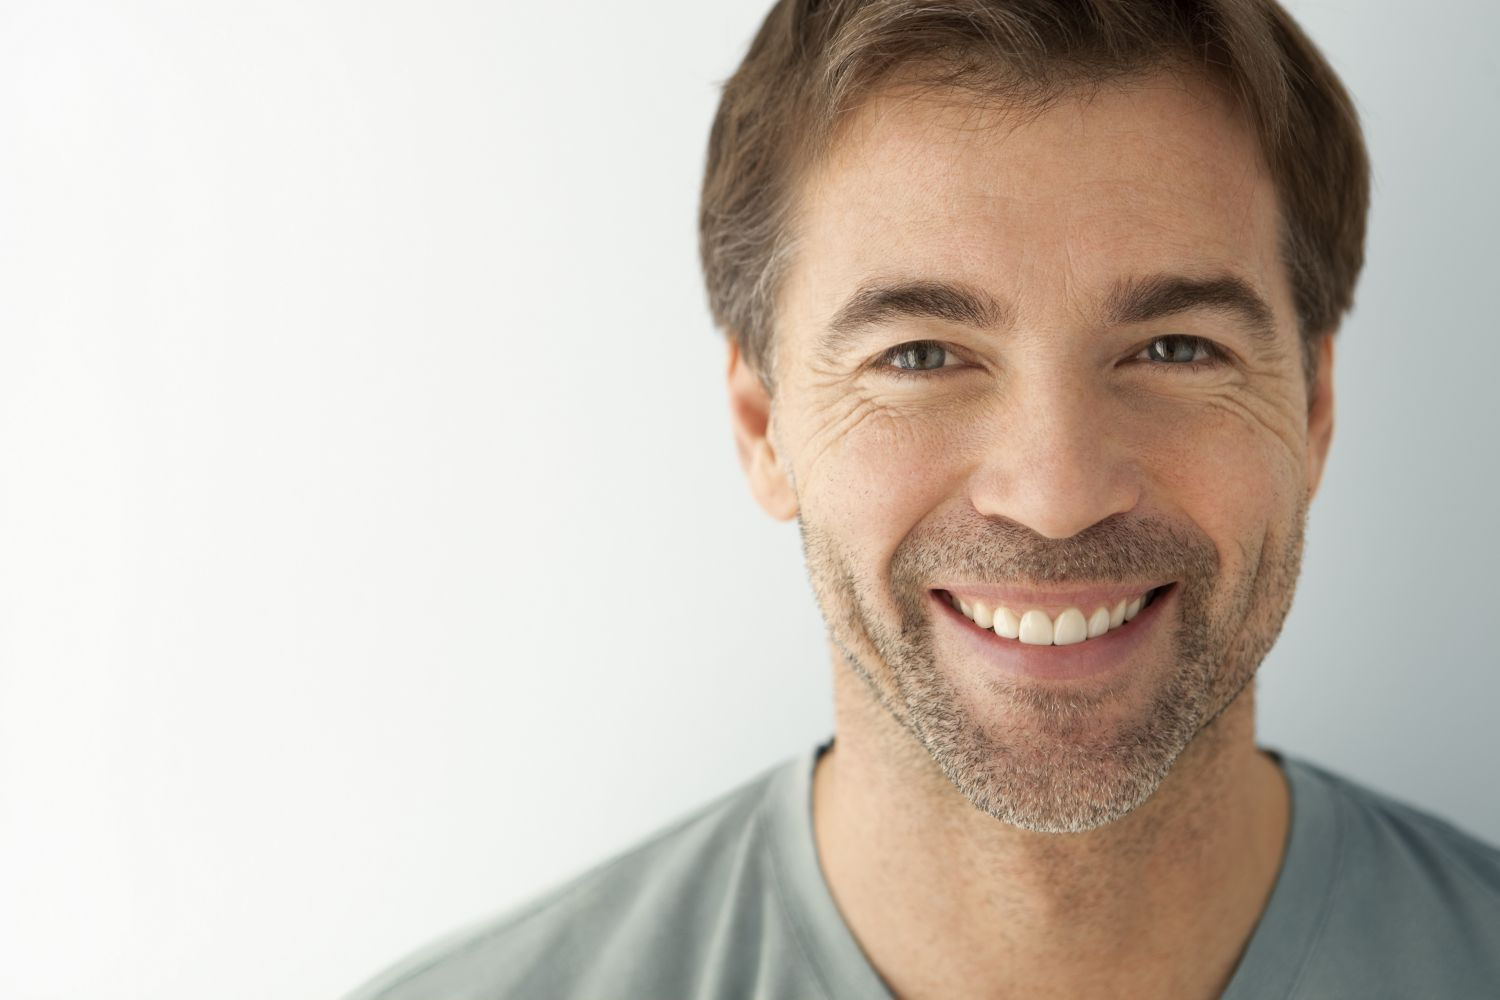 Smiling man with an attractive smile